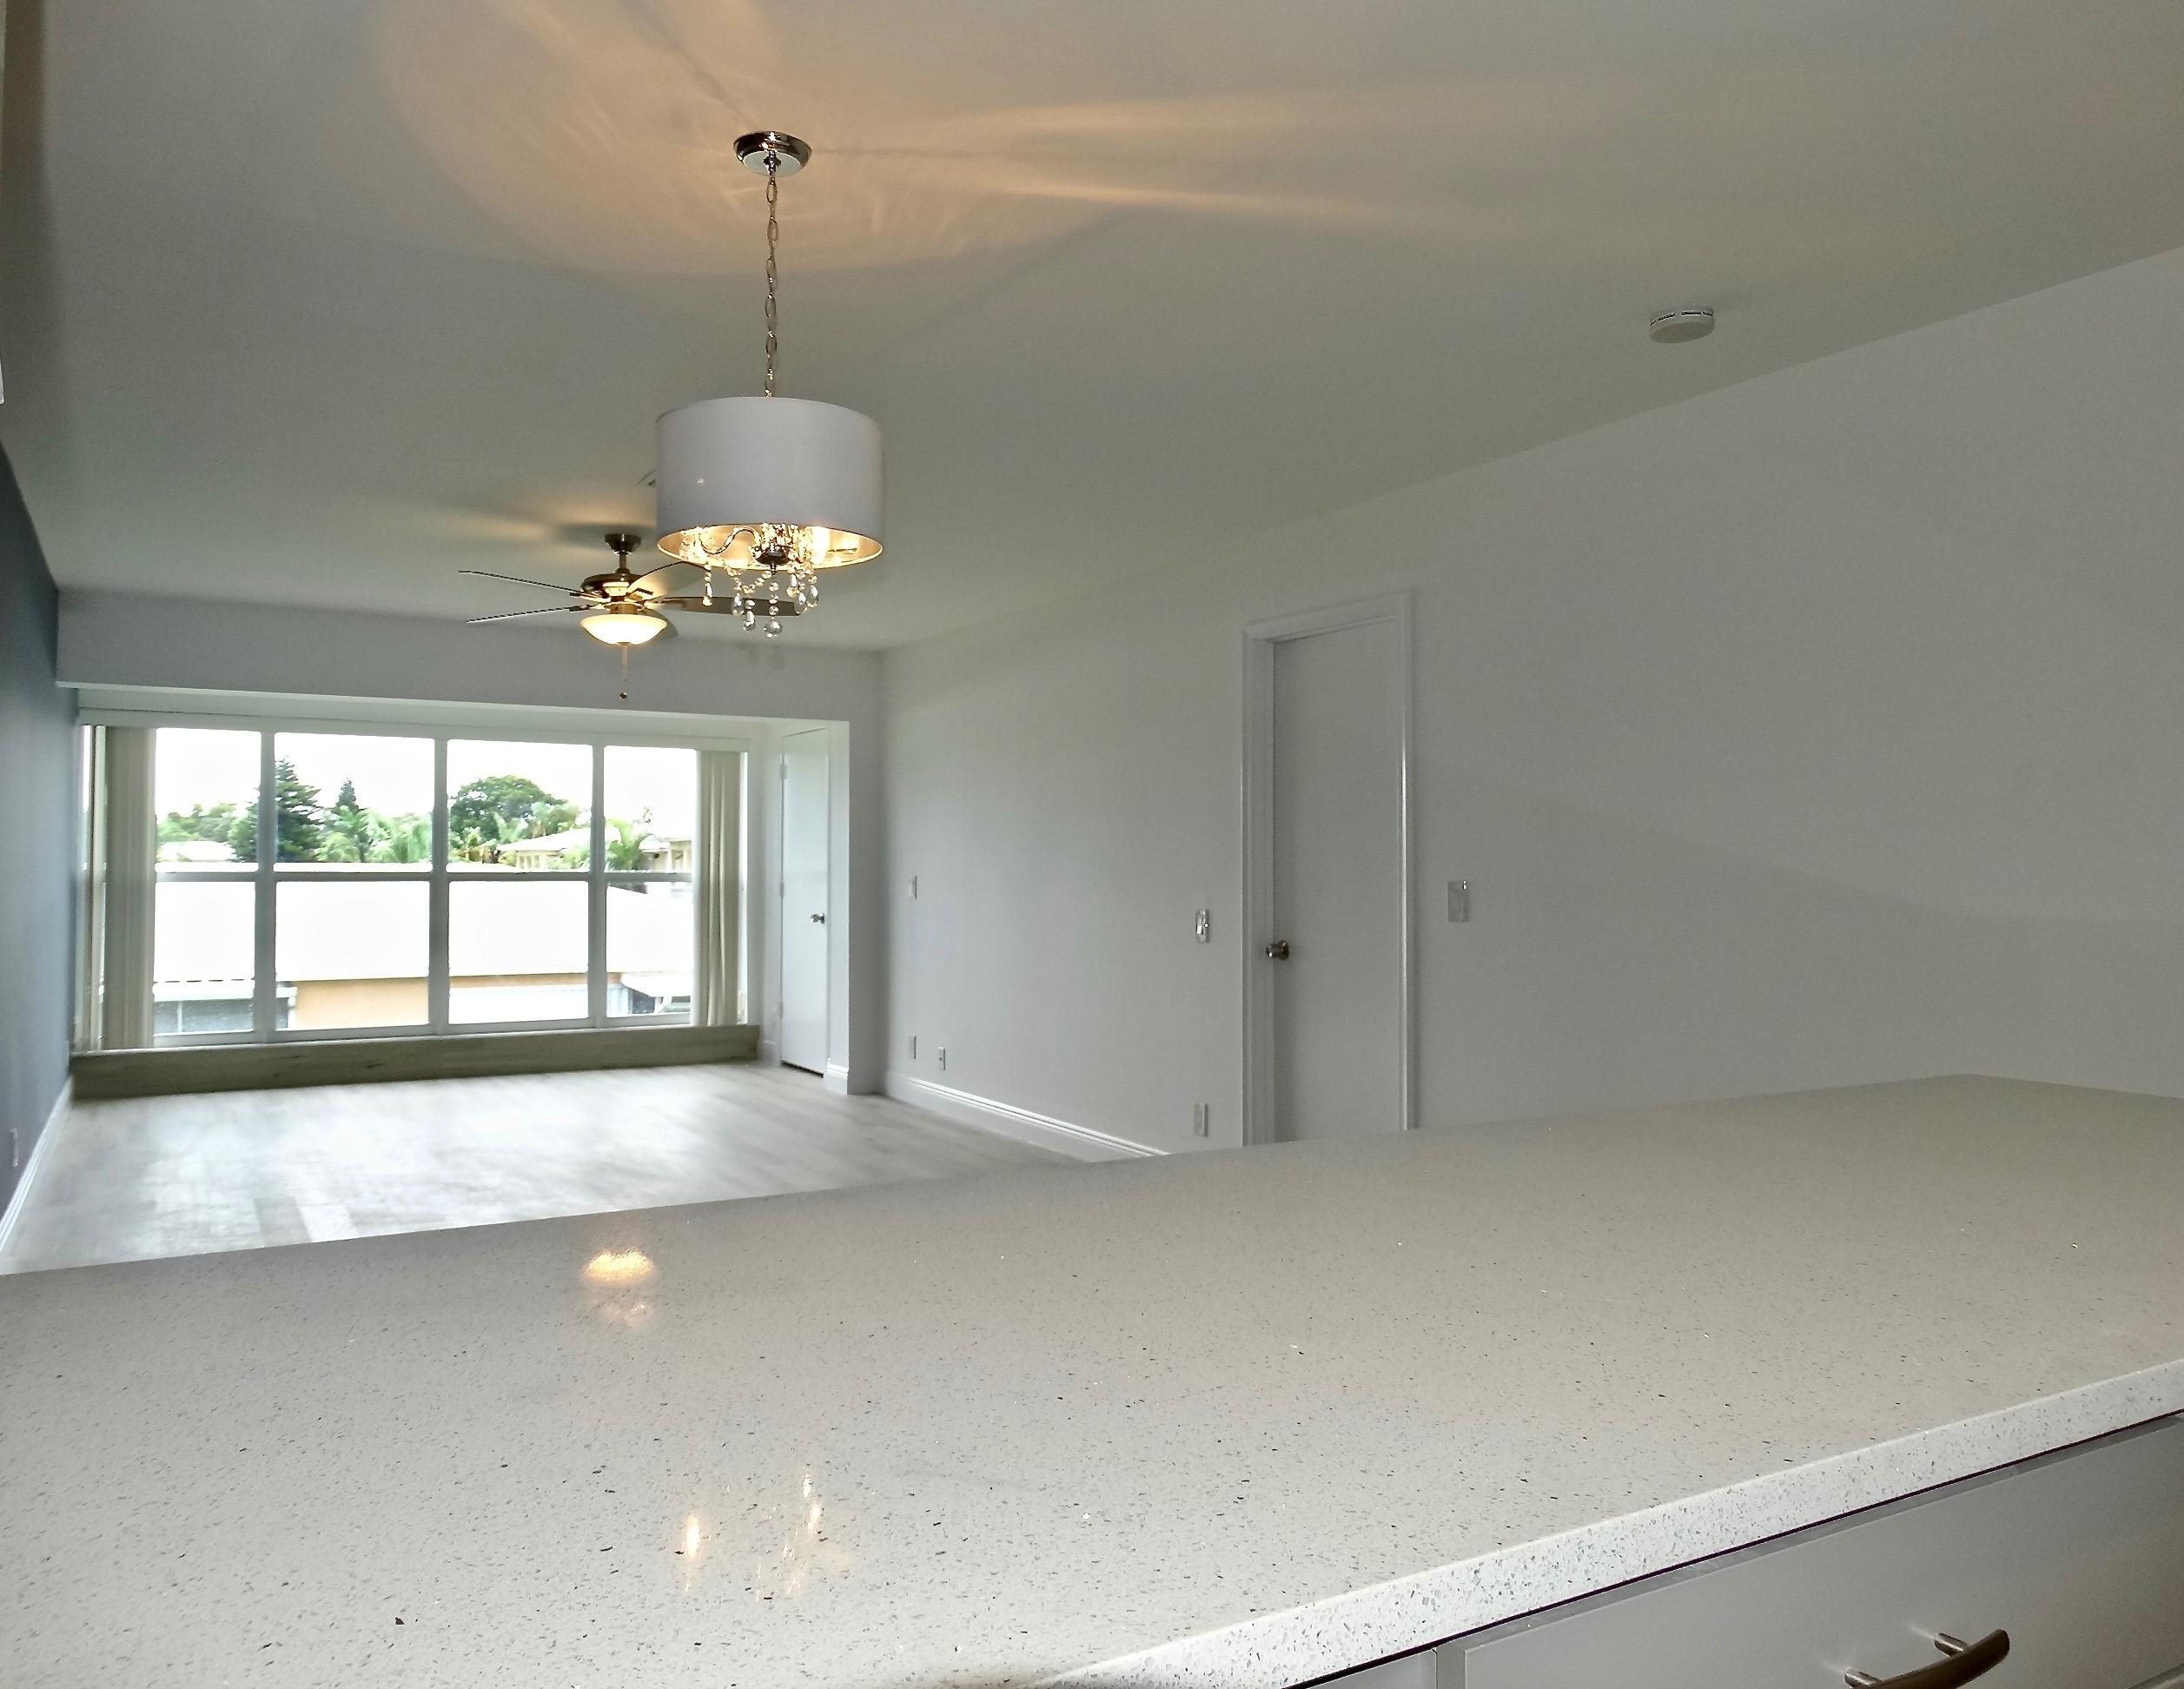 PINES OF DELRAY NORTH CONDO DELRAY BEACH FLORIDA